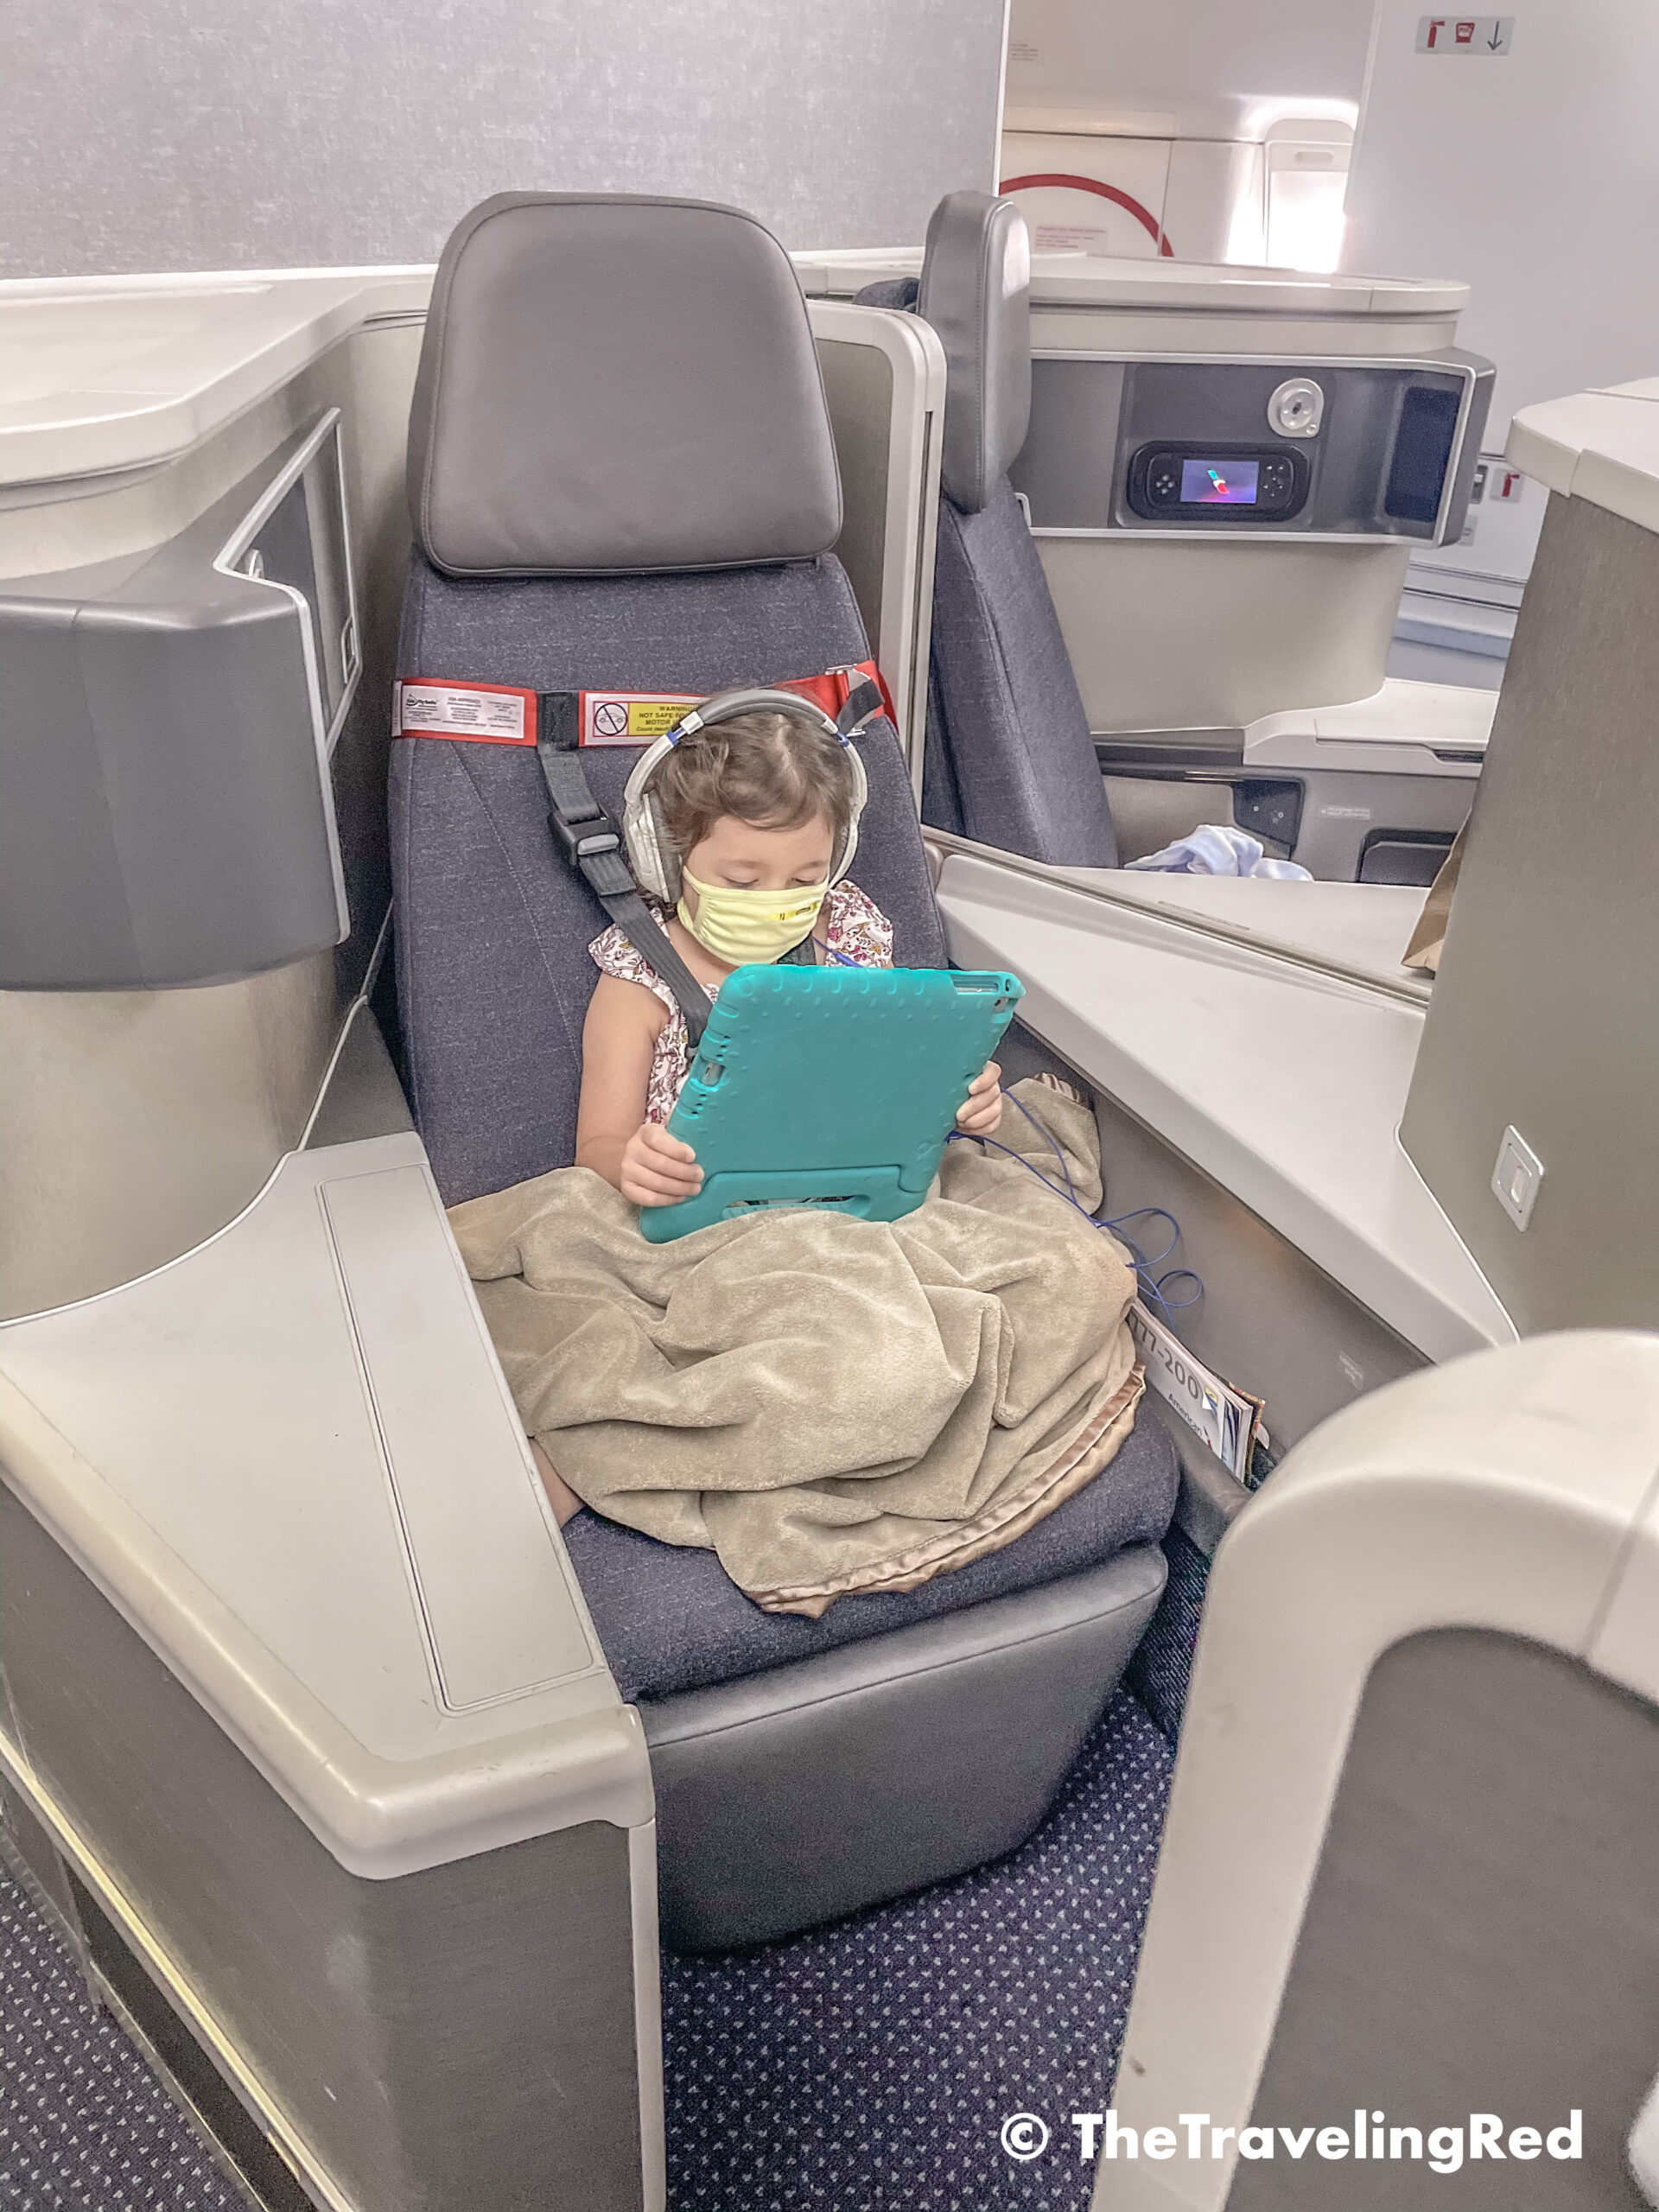 Travel hack for traveling with kids. FAA approved airplane harness as an alternative to installing a car seat on an airplane. It it small and fits in your purse. The harness works with the airplane lap belt to restrain similar to a car seat. It does not affect the person sitting behind you because it goes under their tray table.